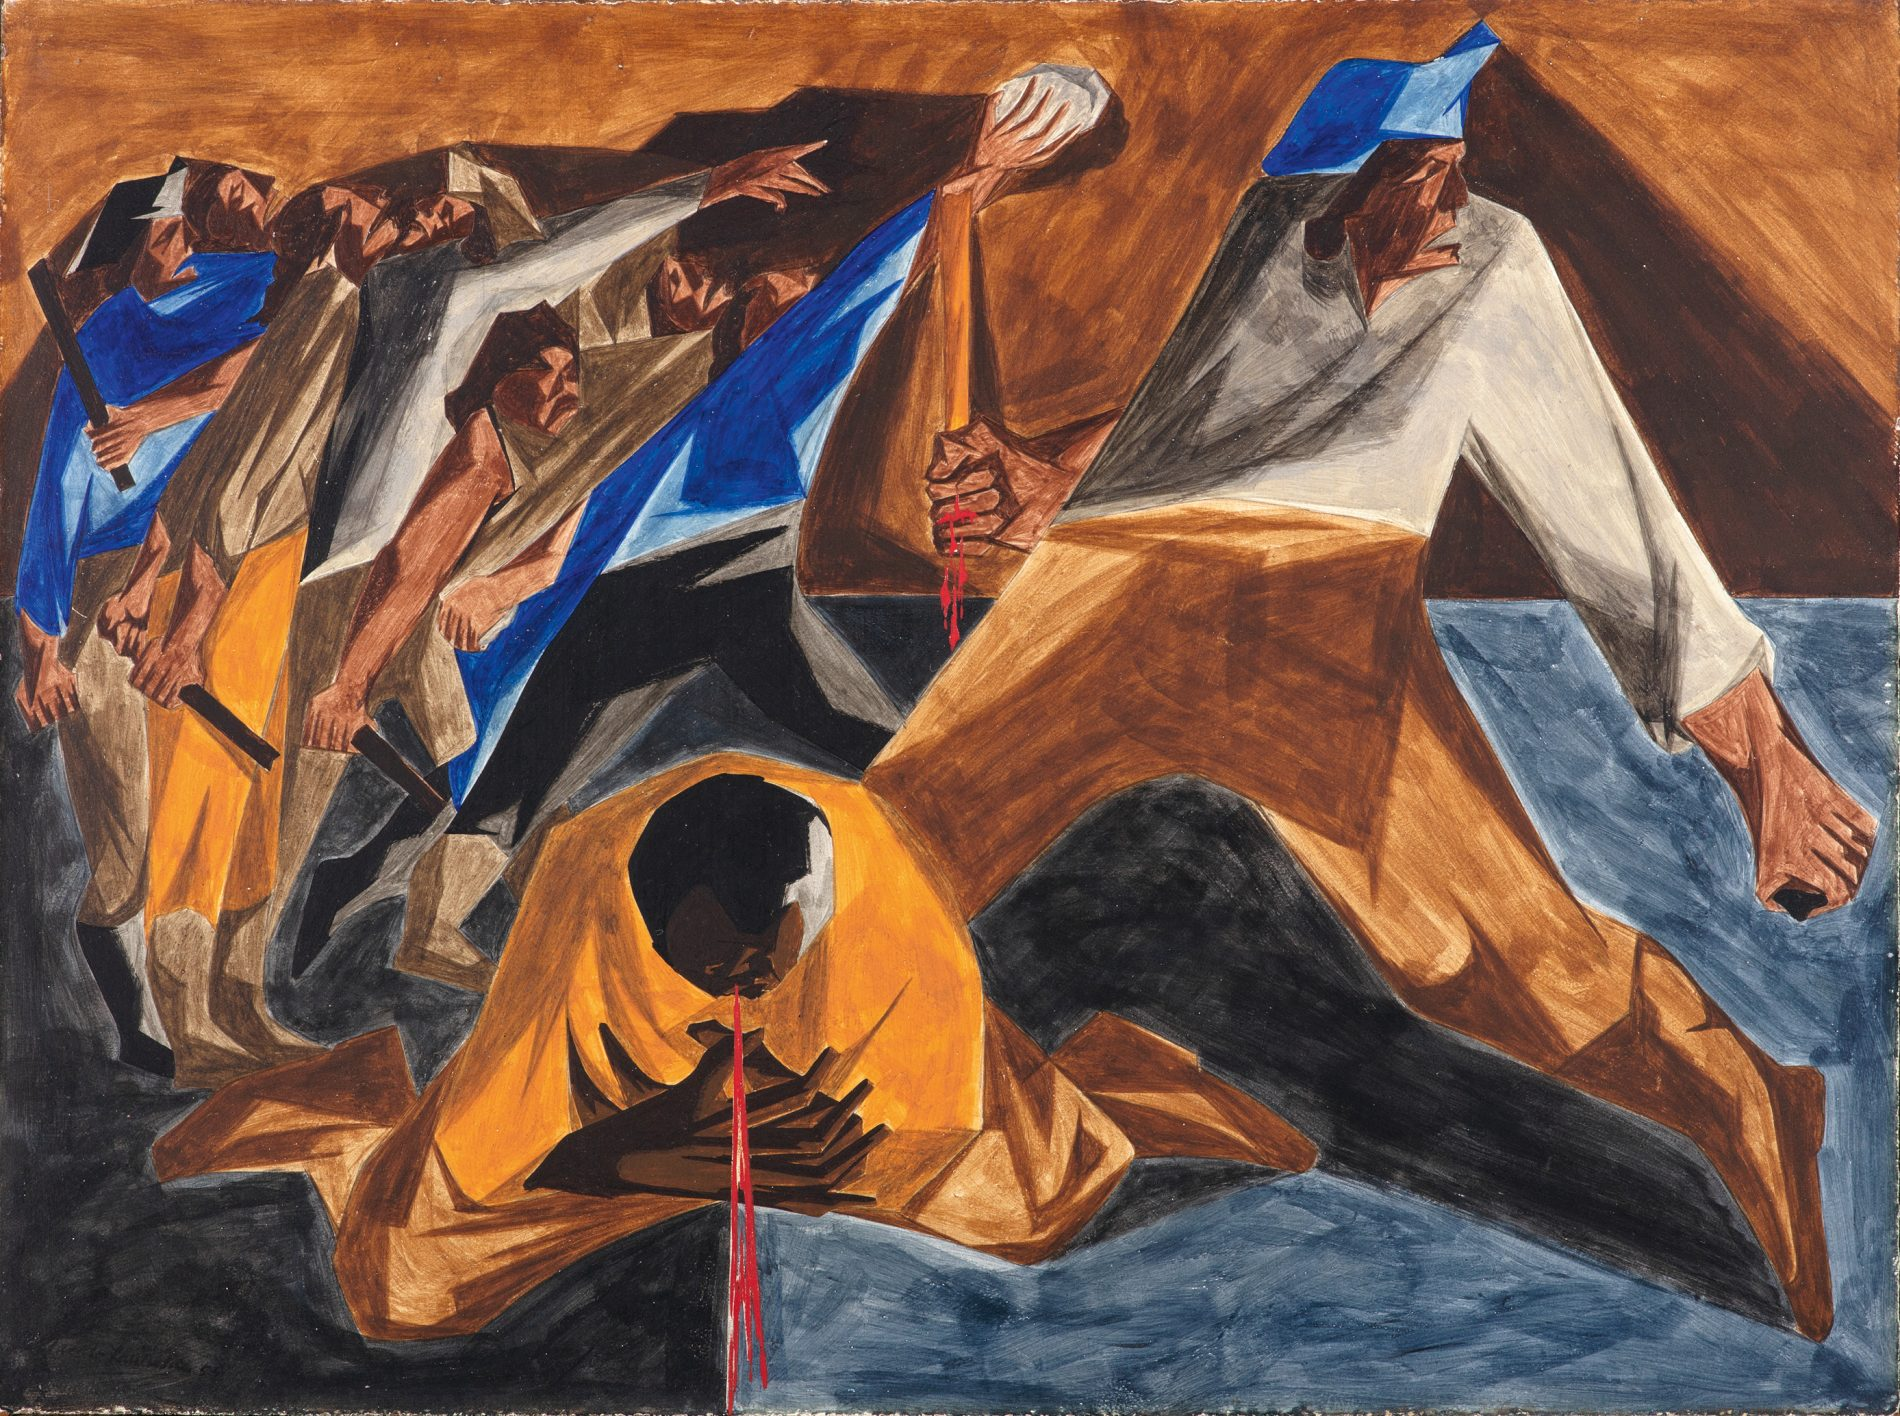 Jacob Lawrence, Panel 2. Massacre in Boston, 1955. From Struggle Series, 1954–56 Egg tempera on hardboard 12 × 16 in. (30.5 × 40.6 cm) Collection of Harvey and Harvey-Ann Ross © The Jacob and Gwendolyn Lawrence Foundation, Seattle / Artists Rights Society (ARS), New York. Photo by Bob Packert/PEM